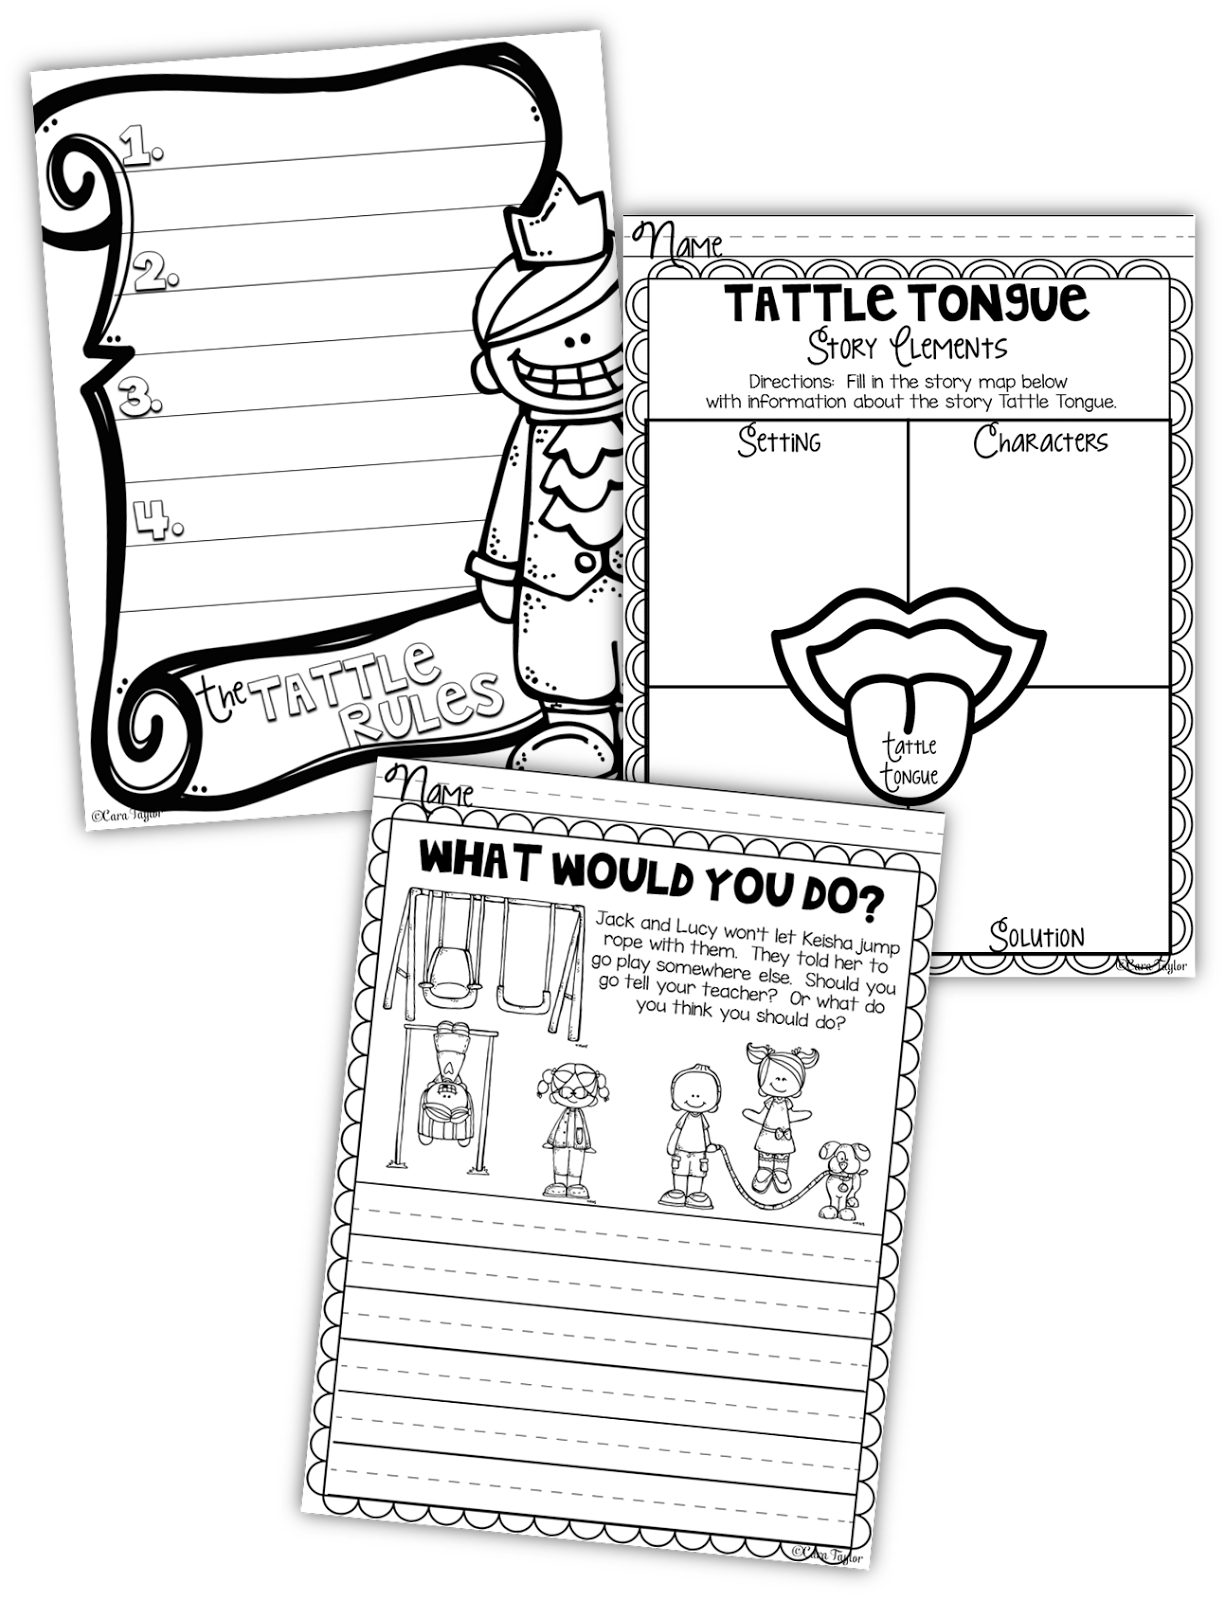 Creative Playground: Rid Your Students of Tattle Tongue